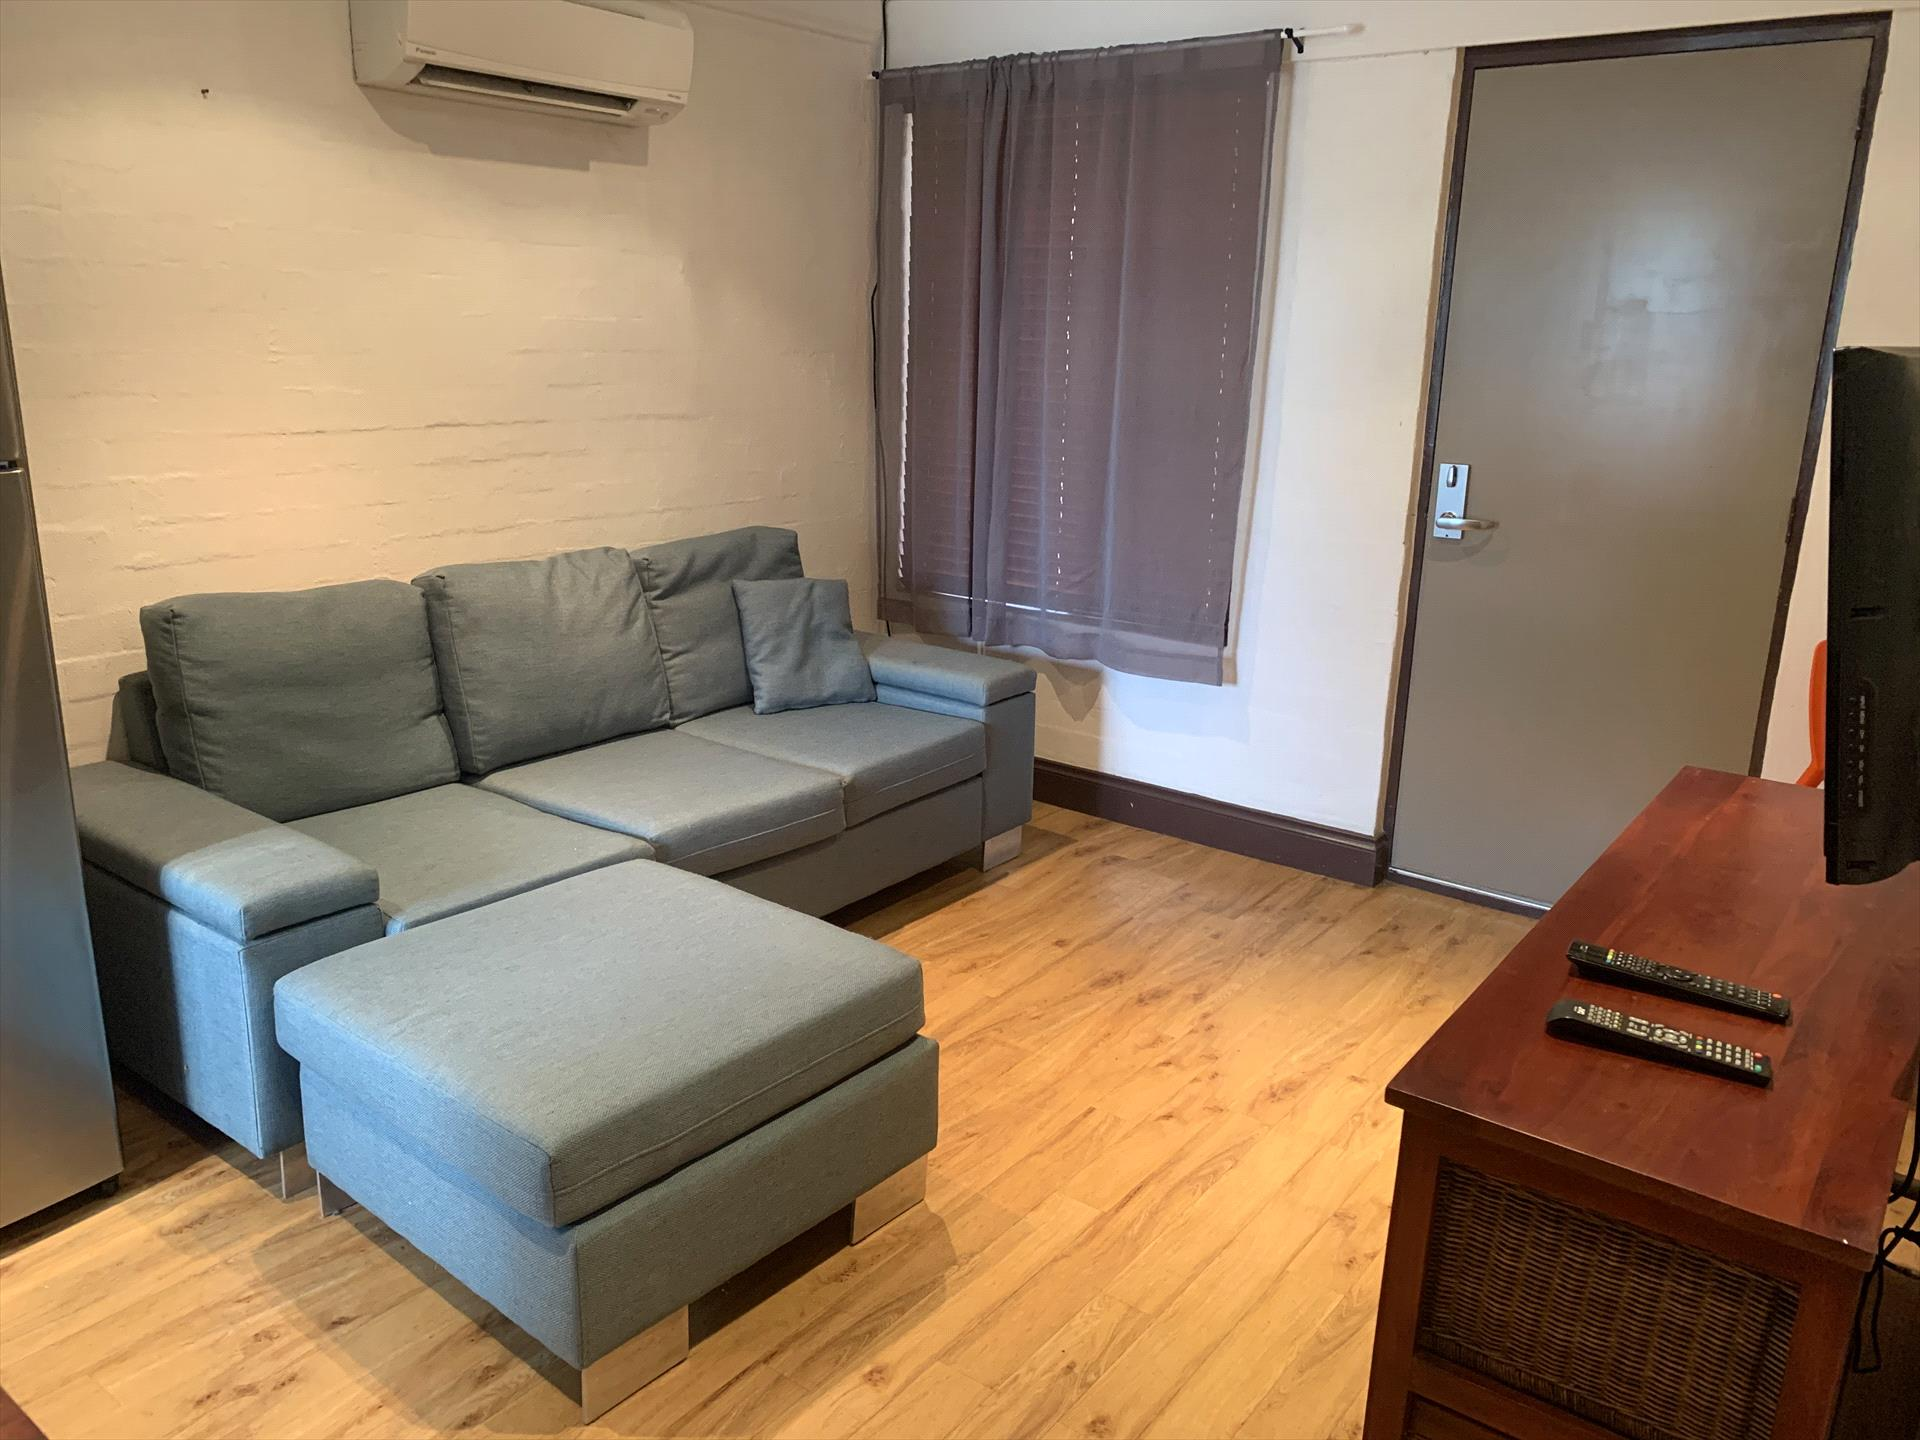 2 Bedroom Apartment Room Image